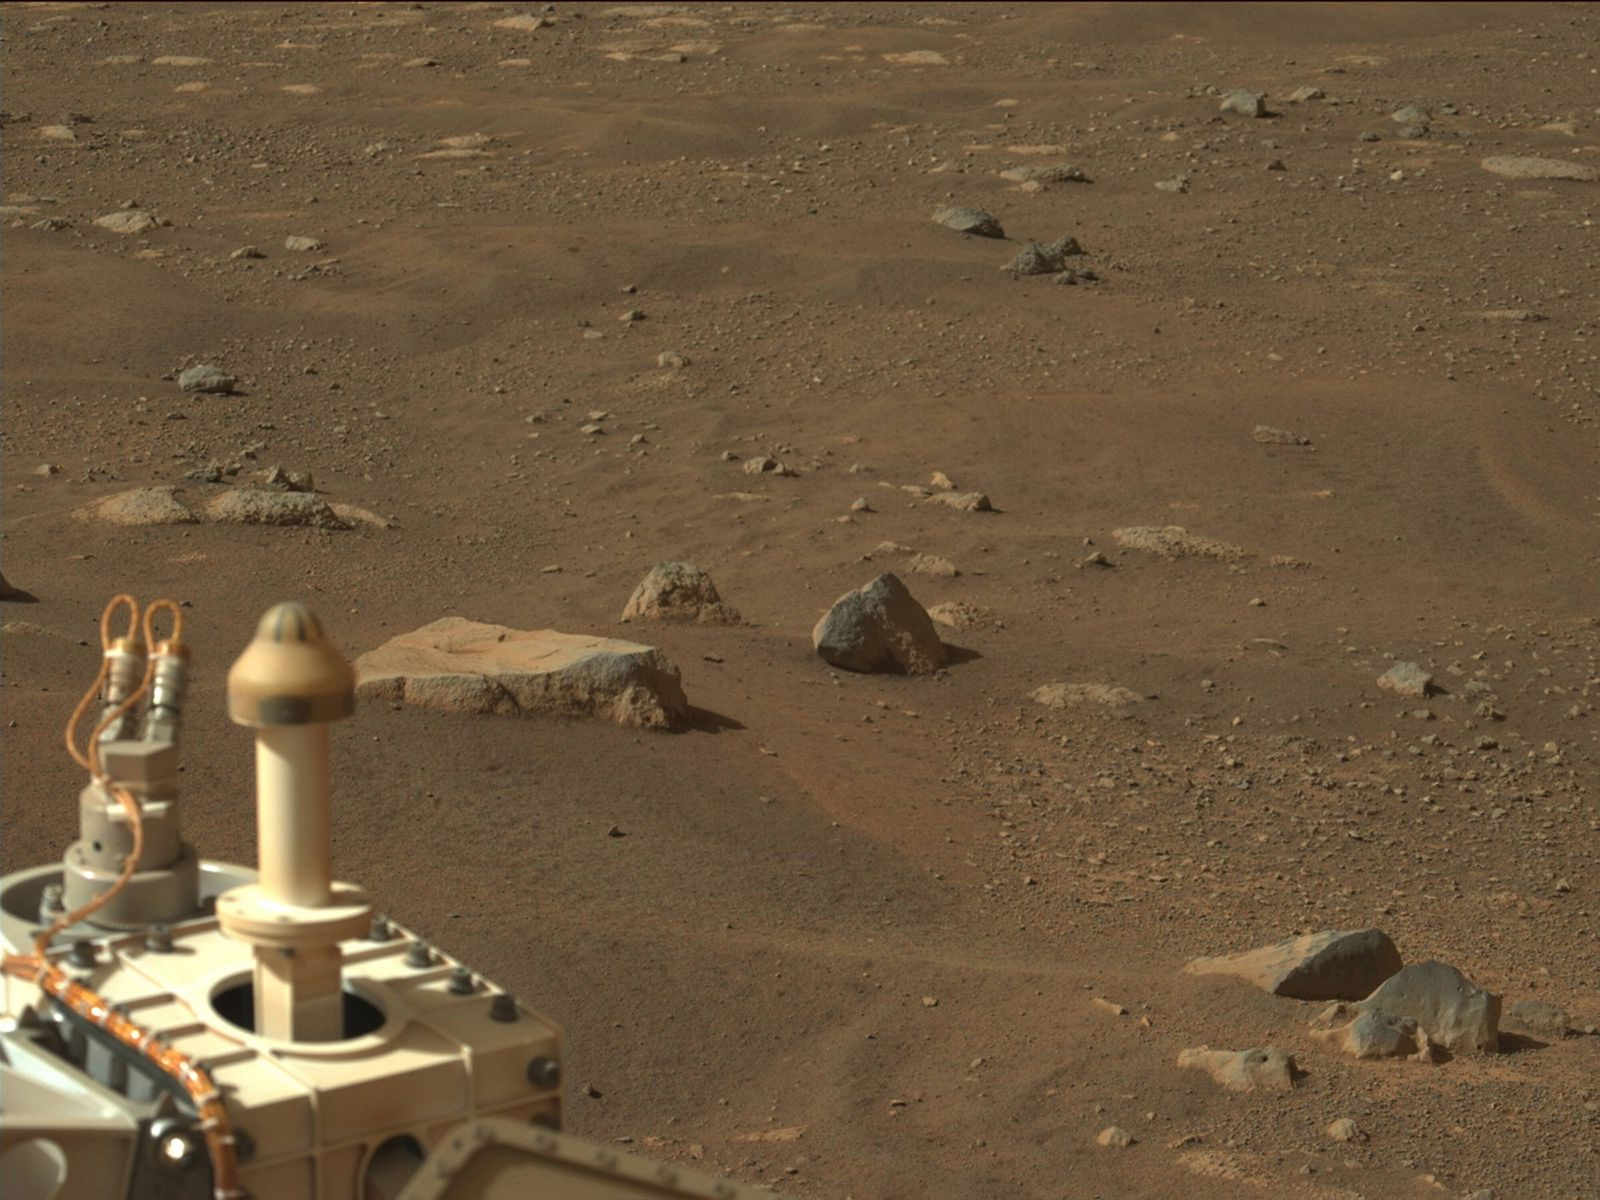 NASA s Mars Perseverance rover acquired this image using its Left Mastcam-Z camera. Mastcam-Z is a pair of cameras loca